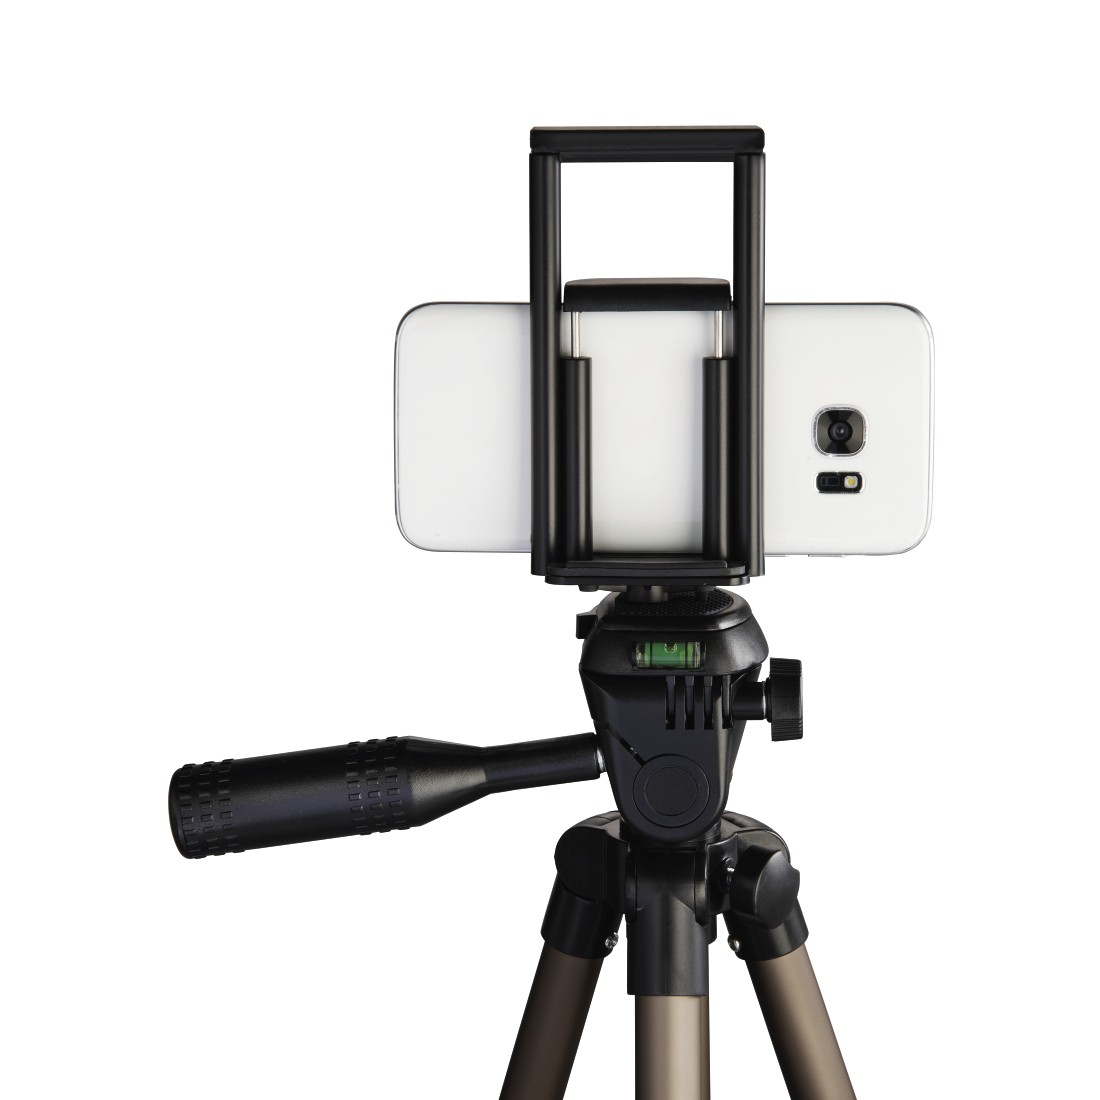 dex6 High-Res Detail 6 - Hama, Tripod for Smartphone/Tablet, 106 - 3D